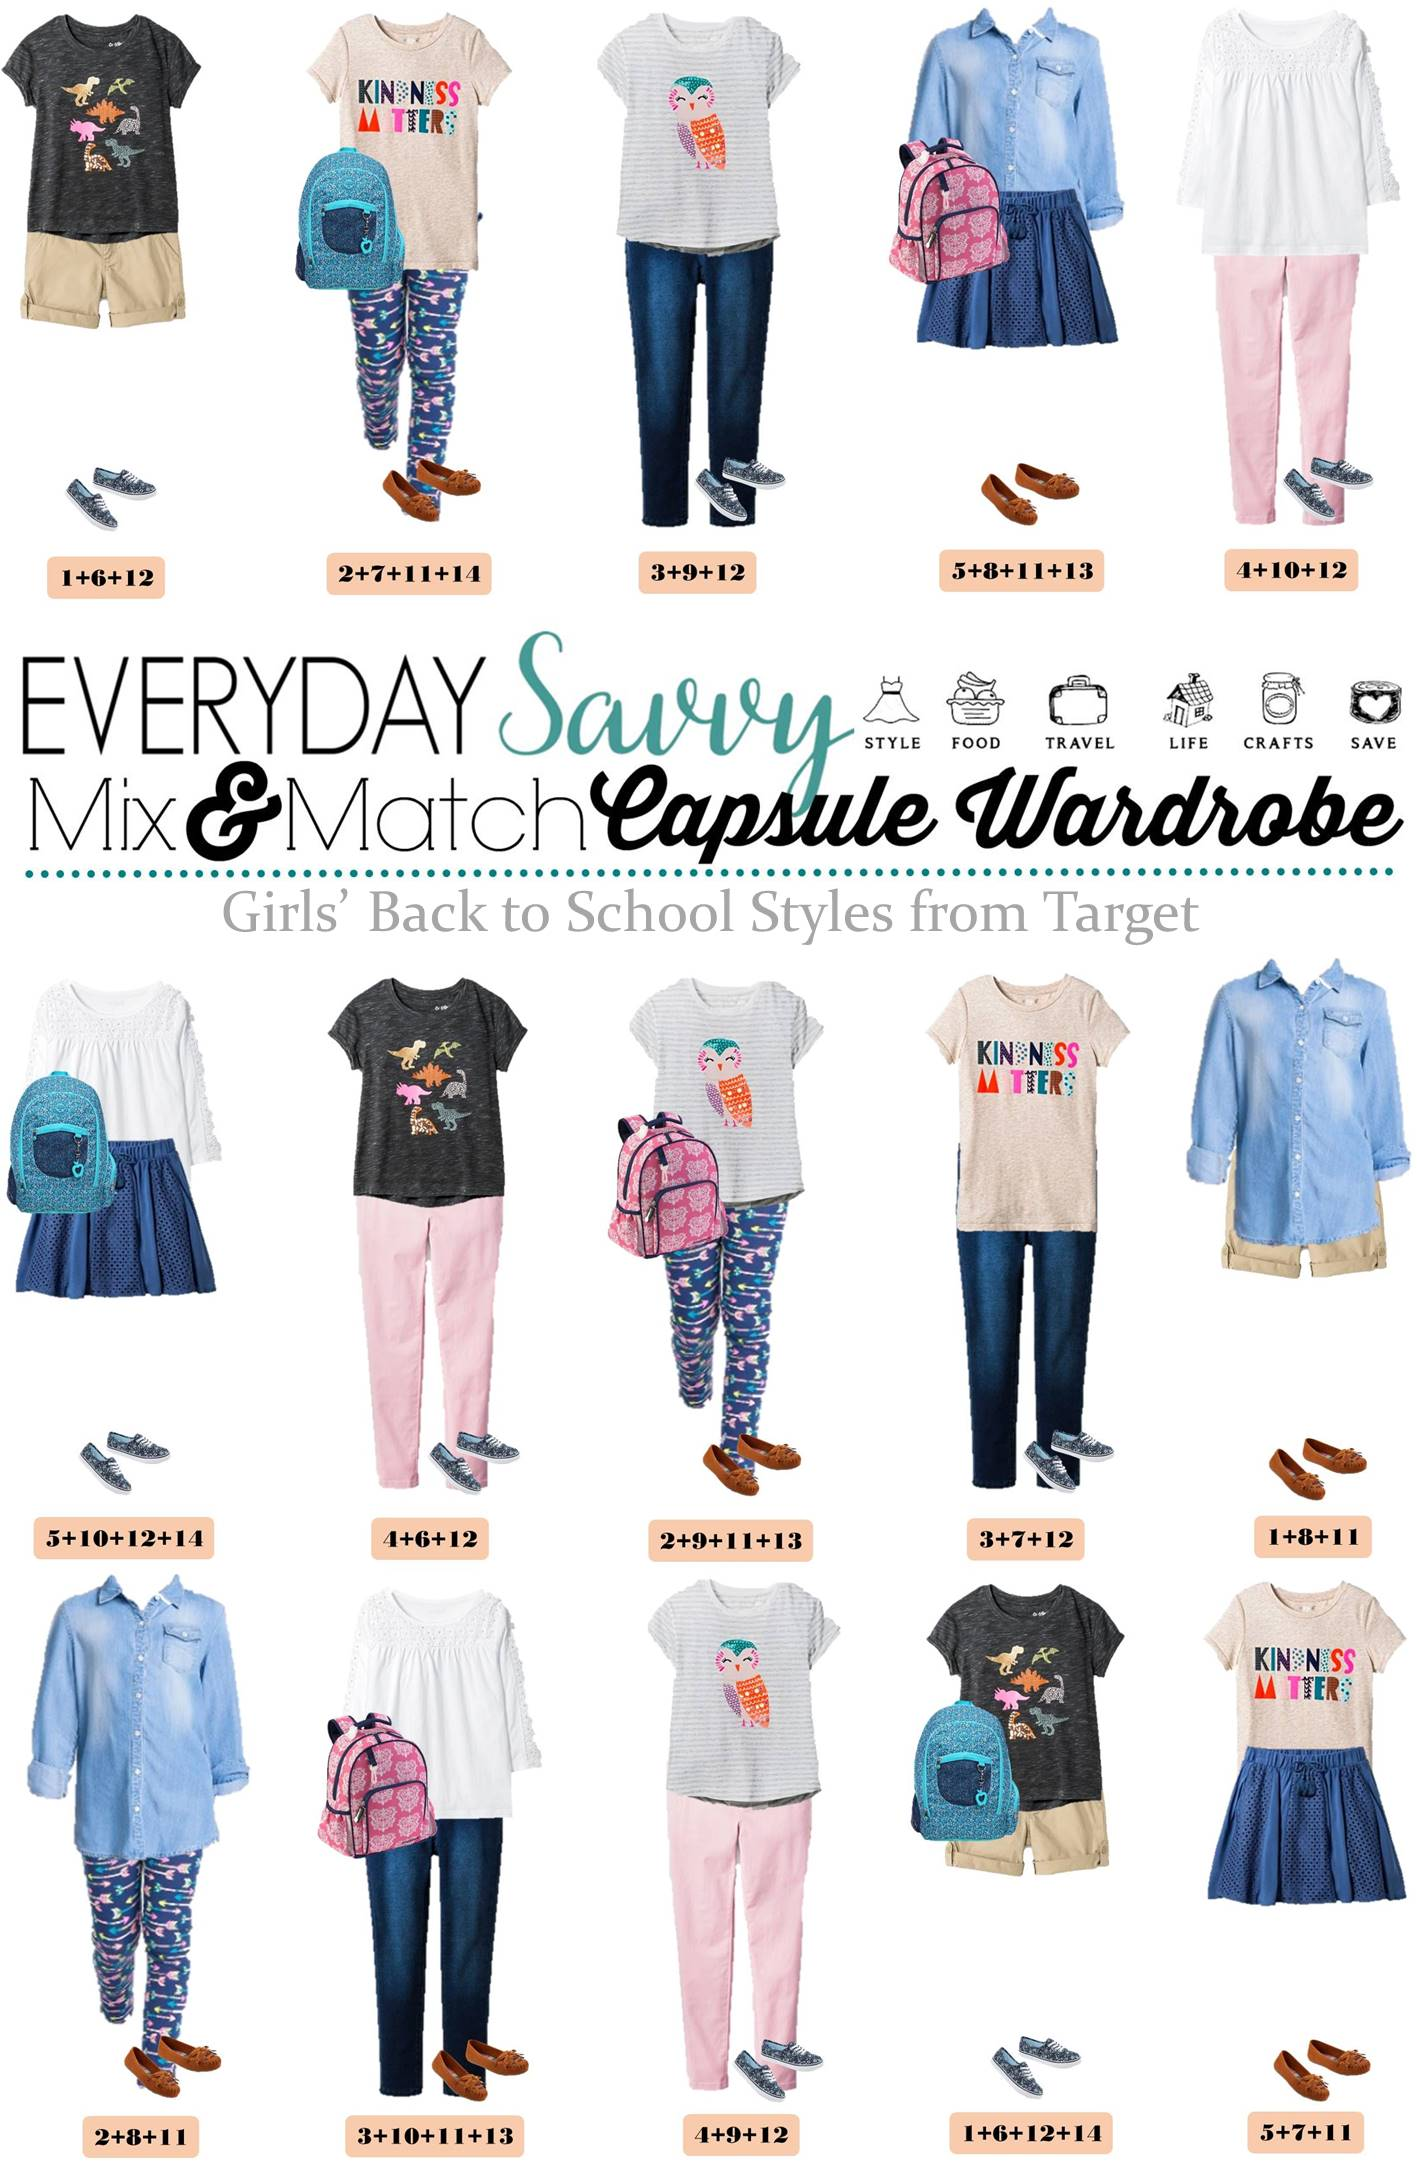 Girls Back To School Capsule Wardrobe - Mix and Match Outfits